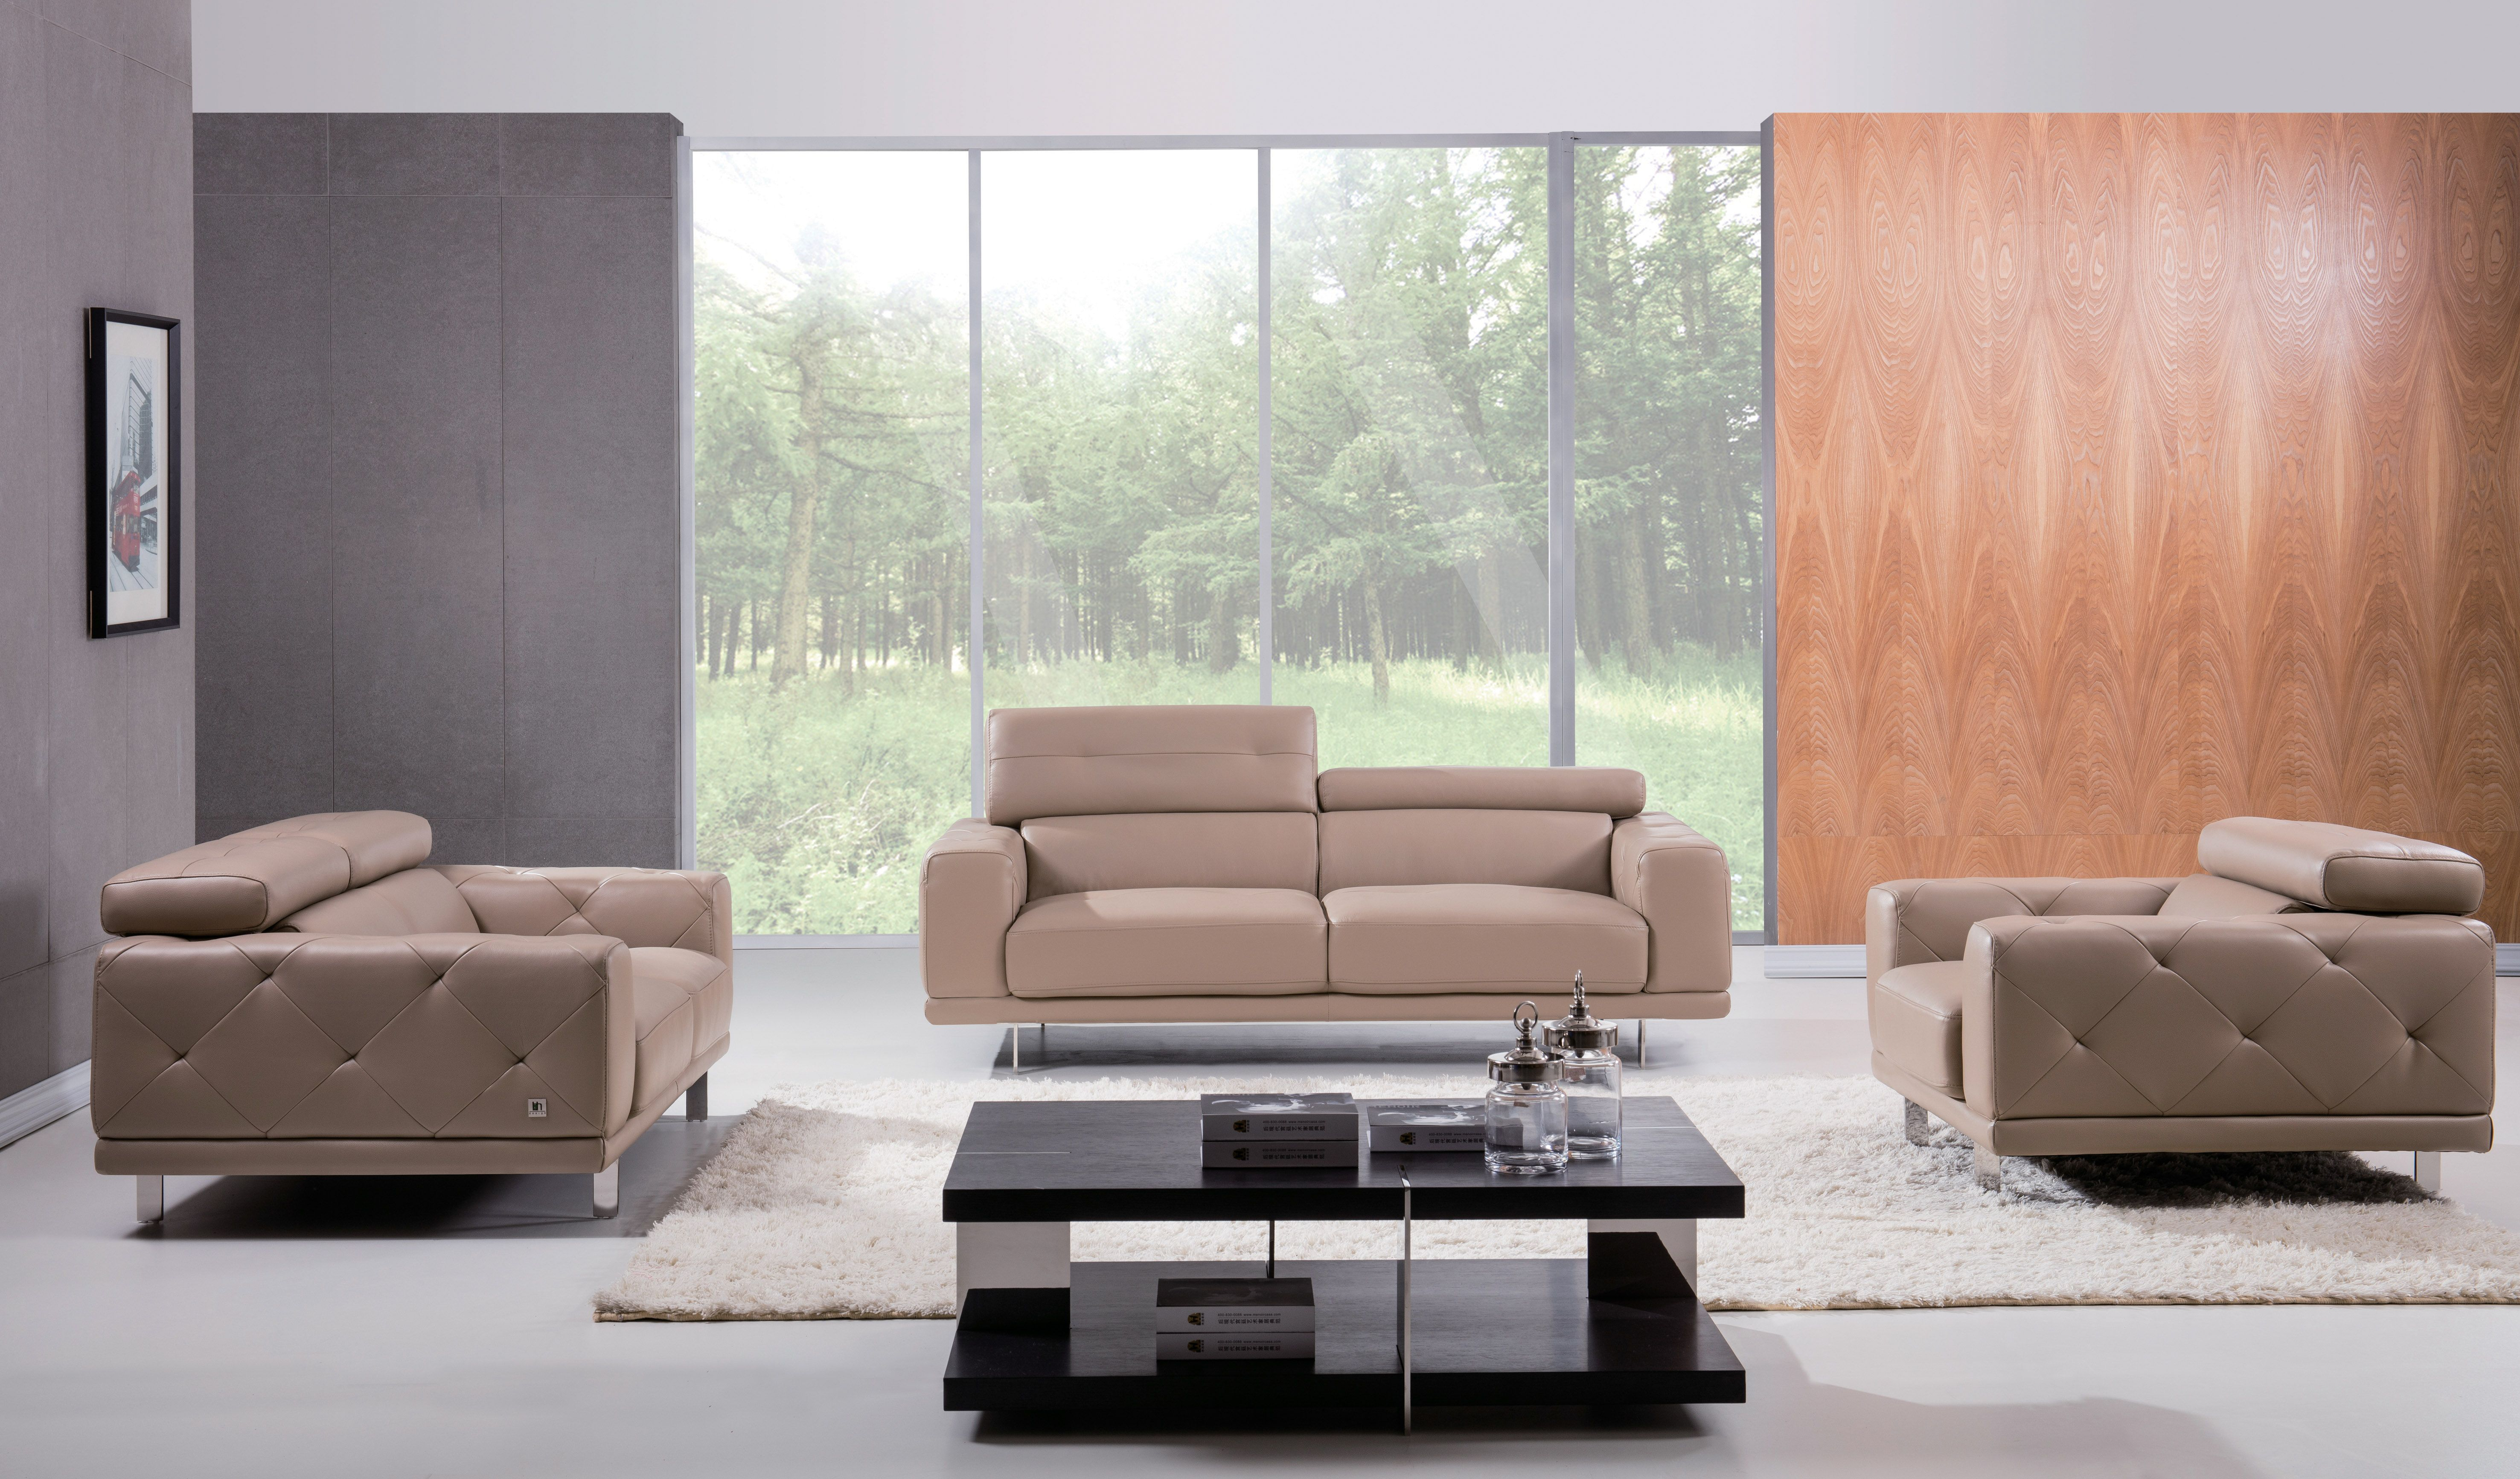 Living Room Settings stylish three-piece taupe leather set. the living room set will